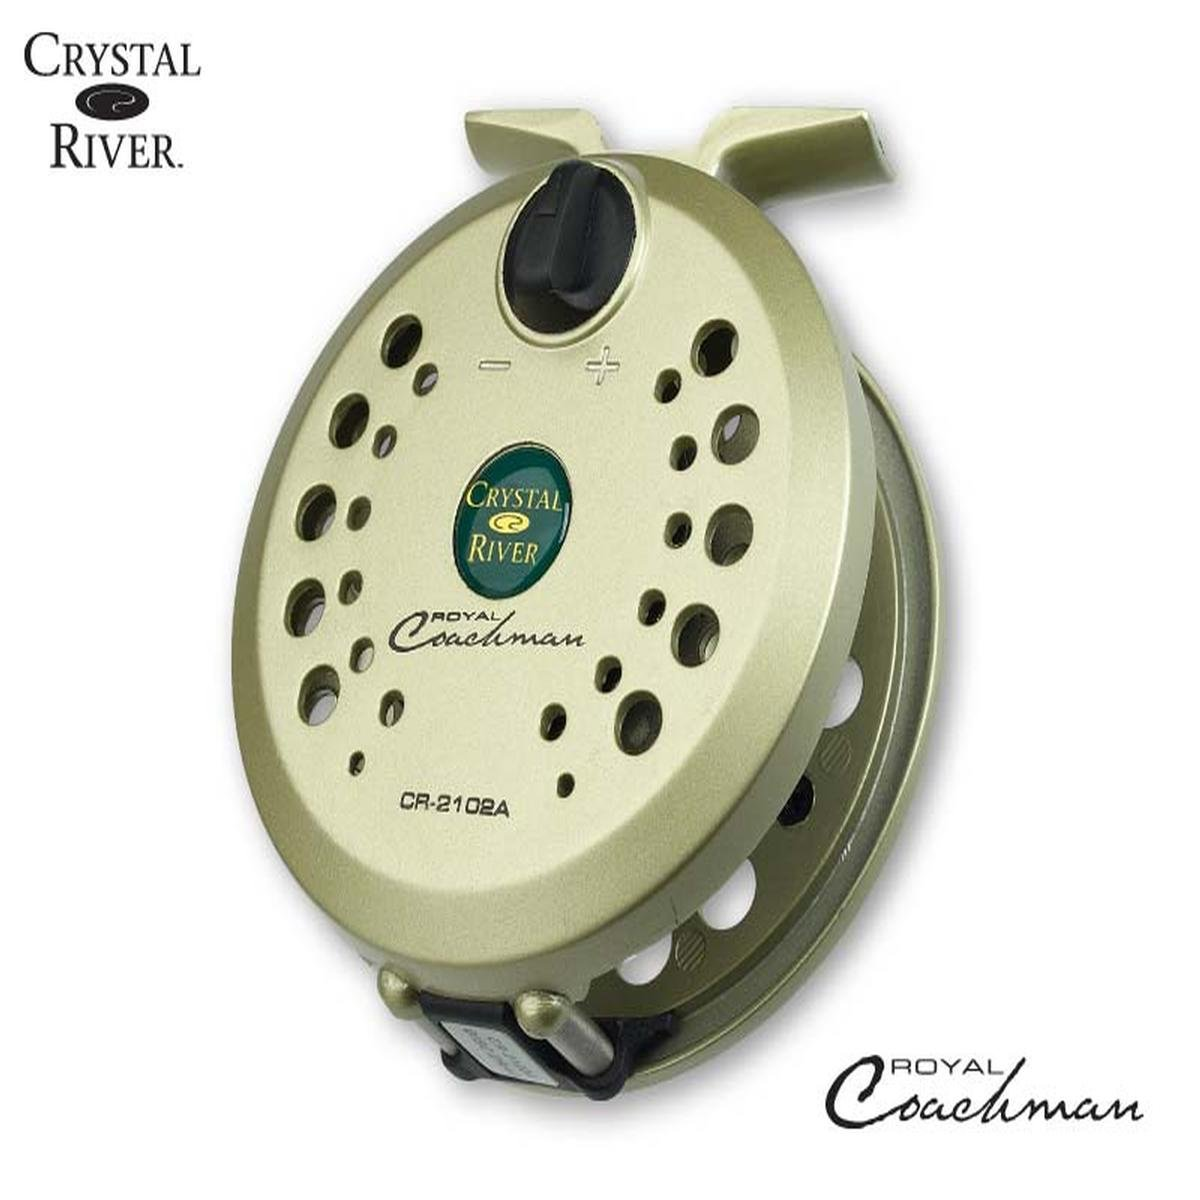 Crystal River CR-2102A Royal Coachman Fly Reel 5 6 7